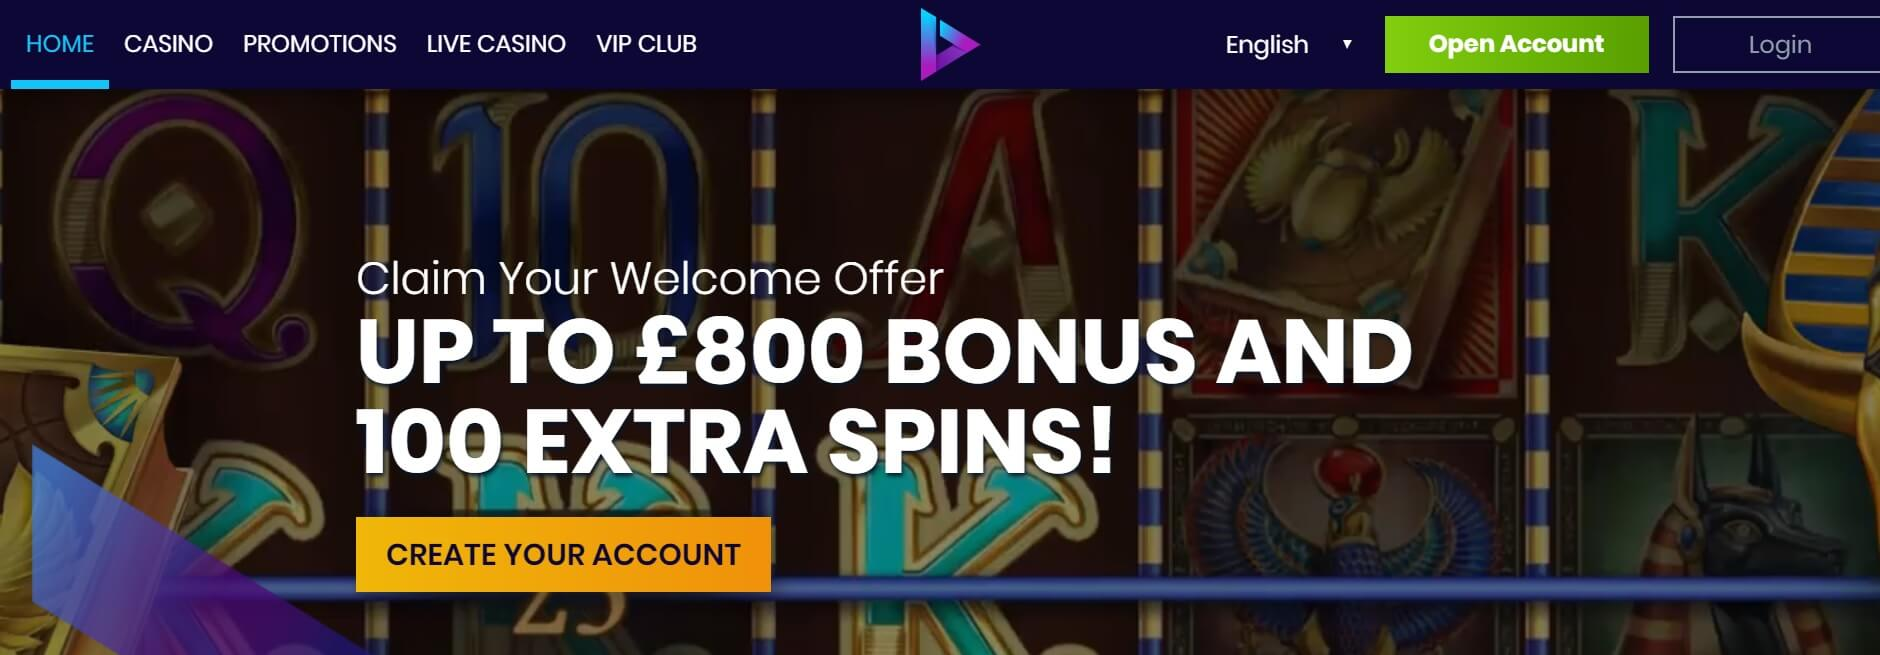 casiplay casino bonus new